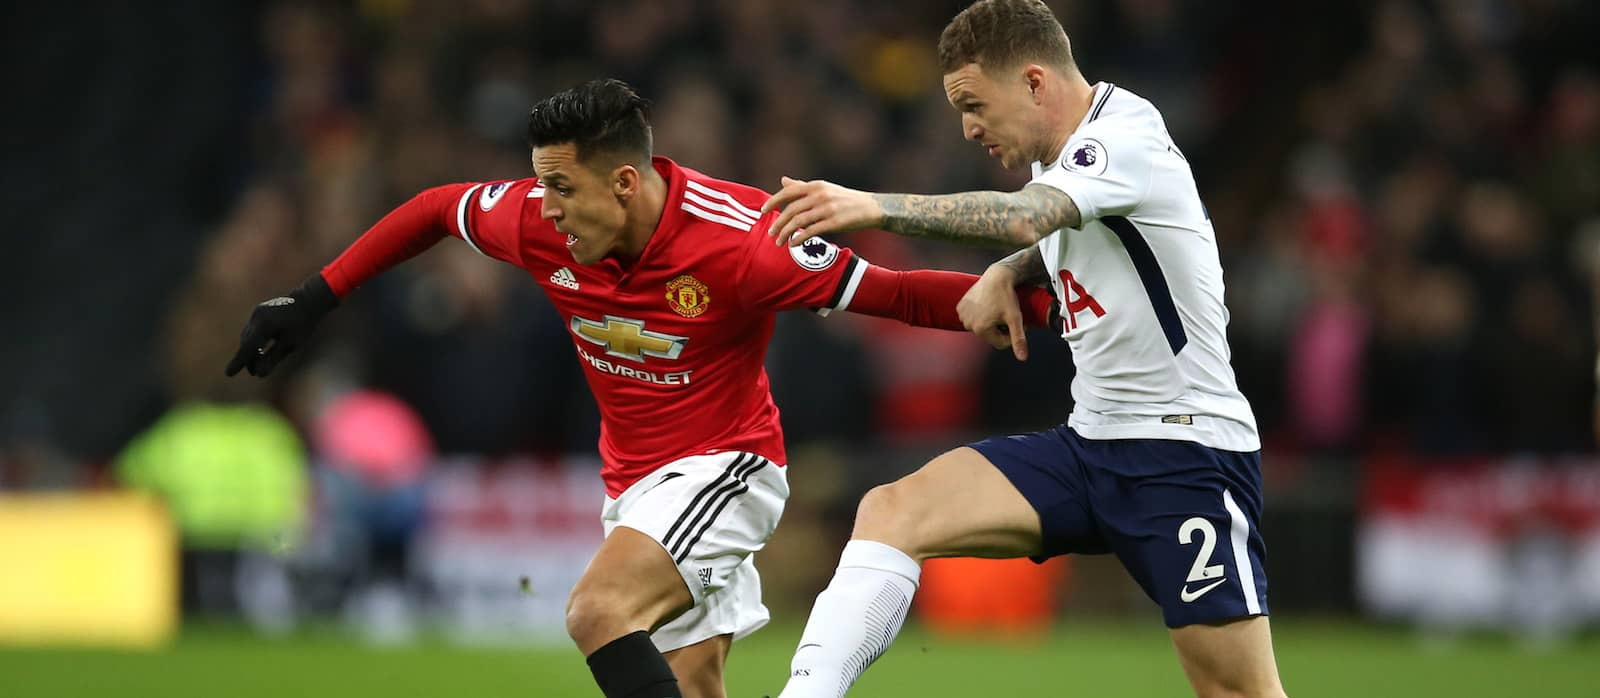 Alexis Sanchez impressed with work rate and spirit in 2-0 loss vs Spurs, claims Jose Mourinho